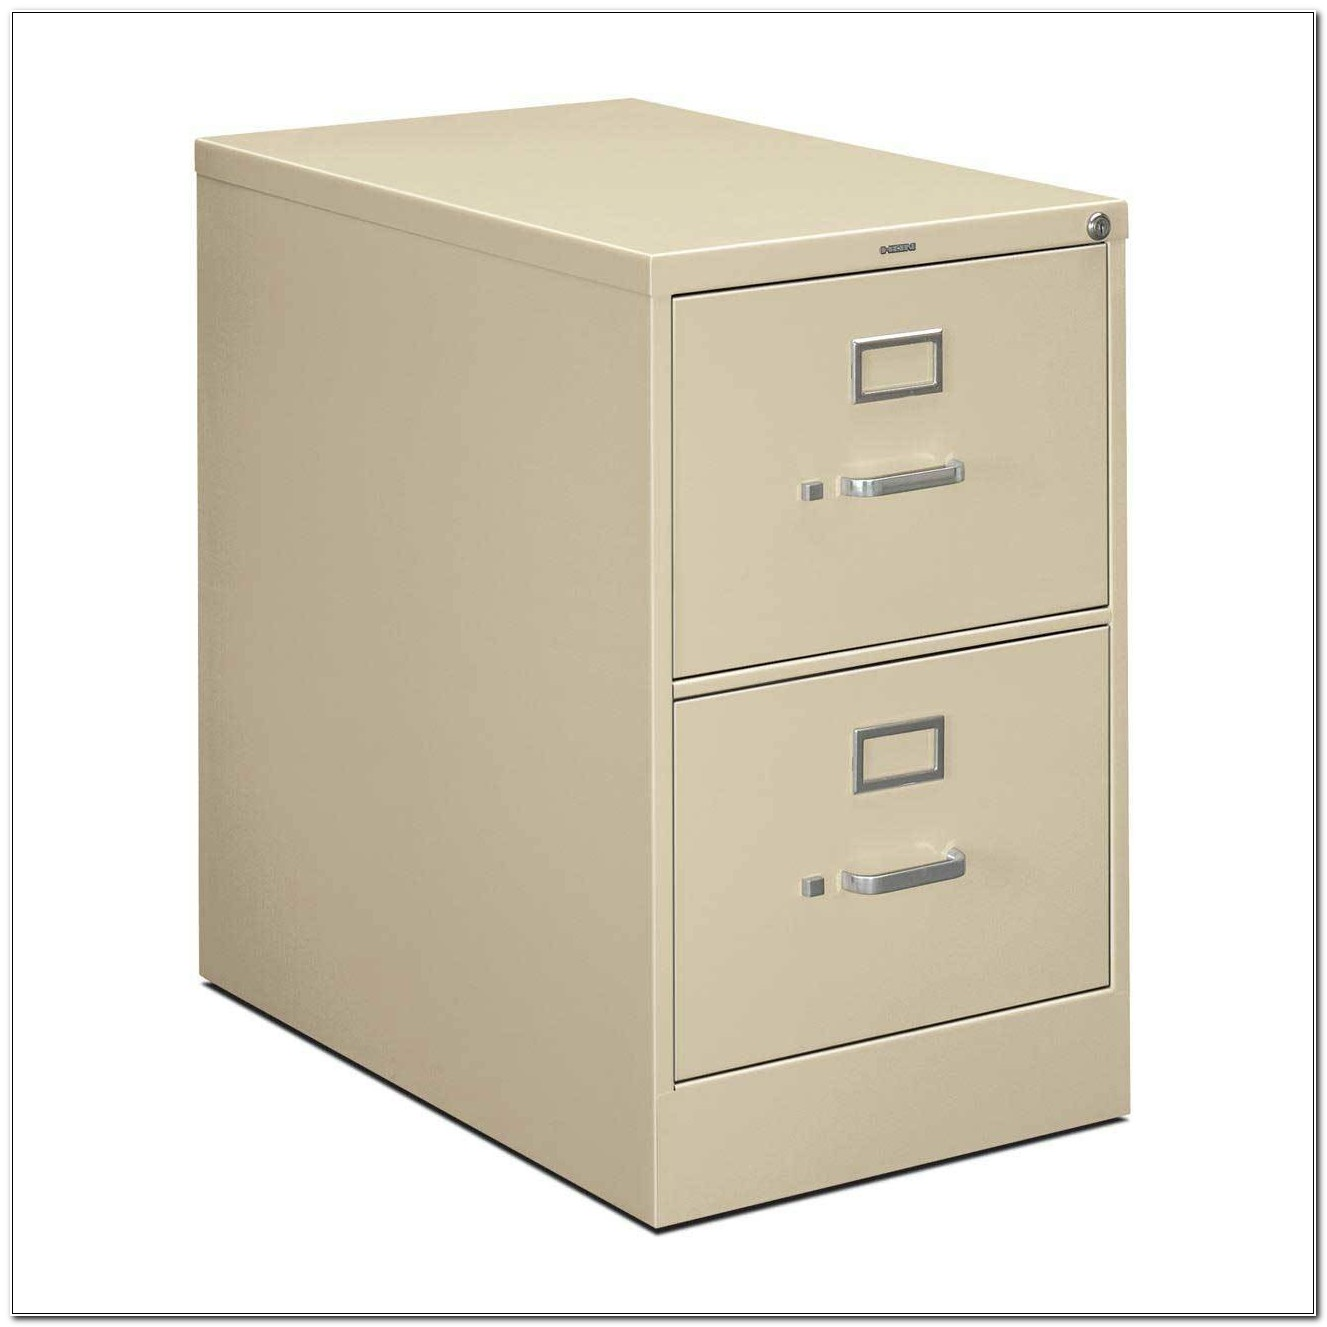 Used 2 Drawer Metal File Cabinets